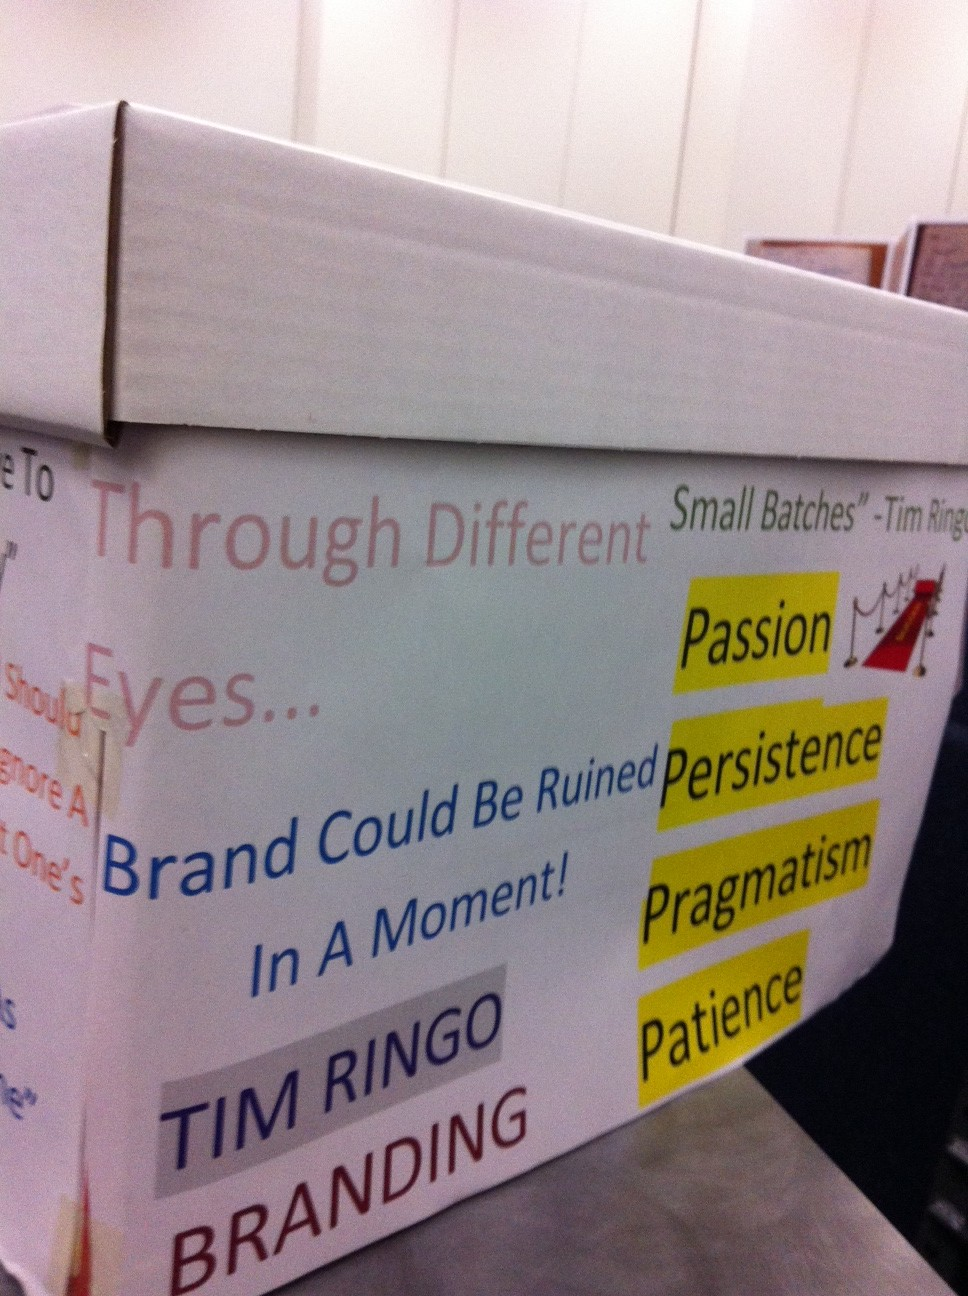 Box demonstrating insights from guest speakers